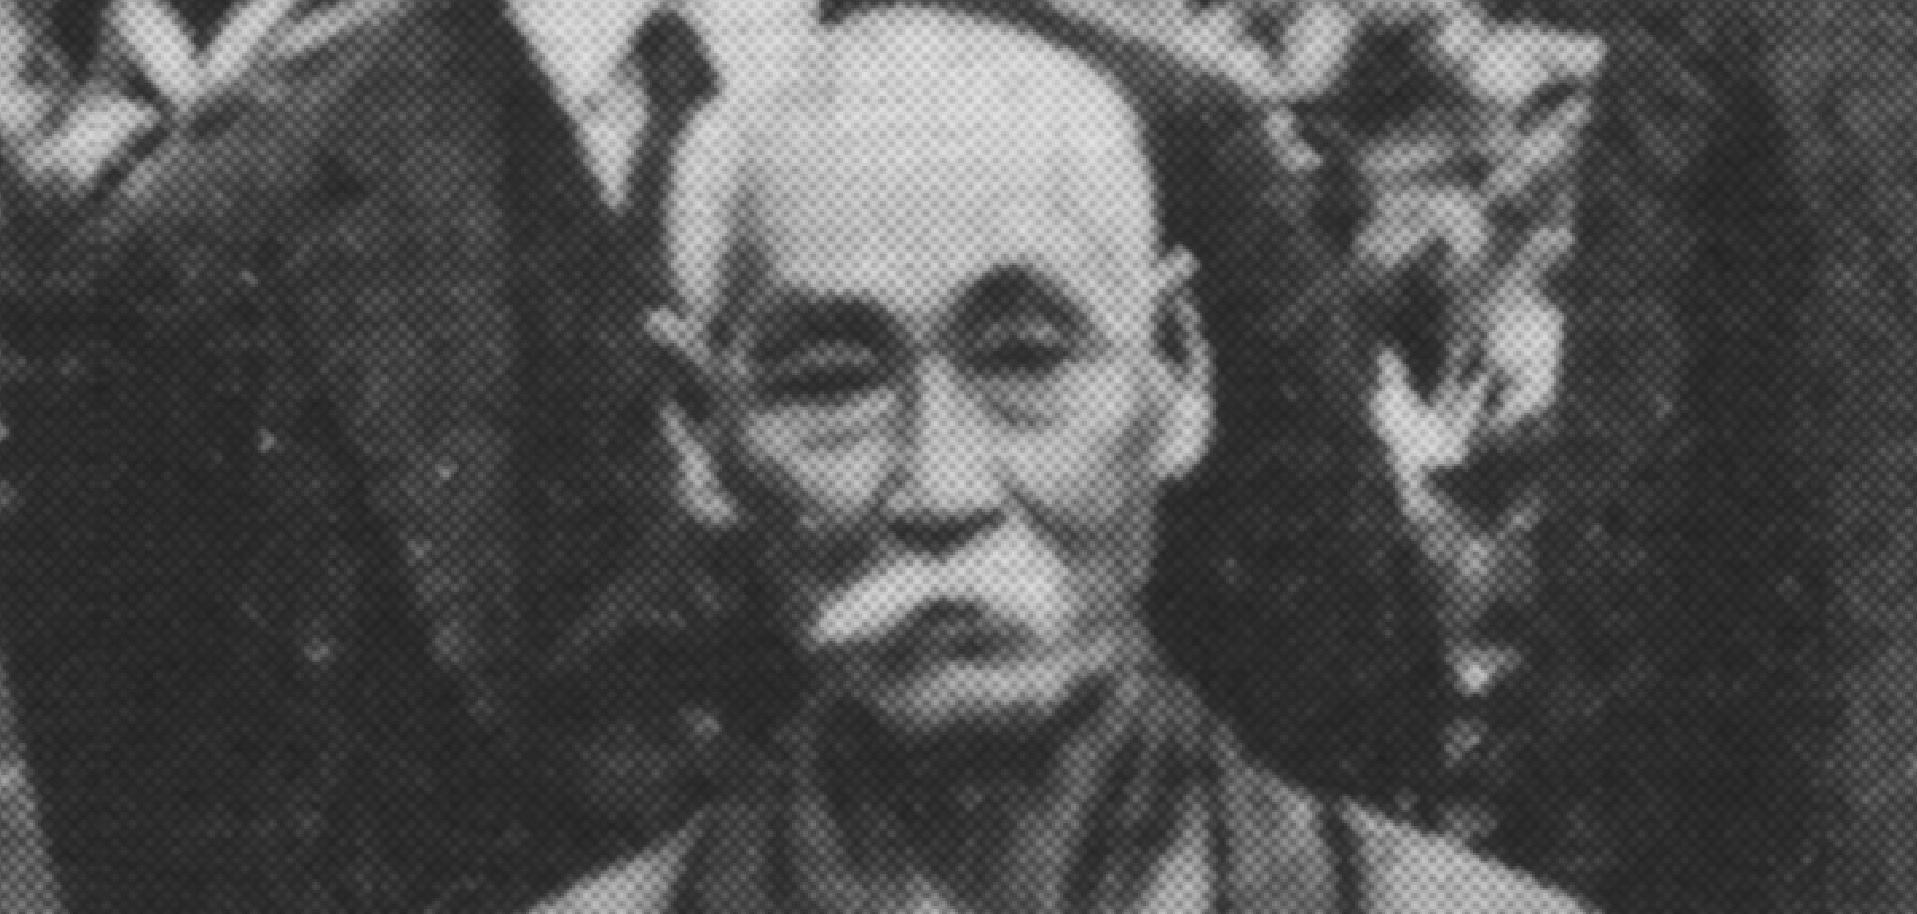 Hanashiro Chōmo 花城長茂 (1869–1945) on a photo taken in 1937 in commemoration of the meeting of the Okinawa Prefecture Karate-dō Promotion Society (沖縄県空手道振興協会).